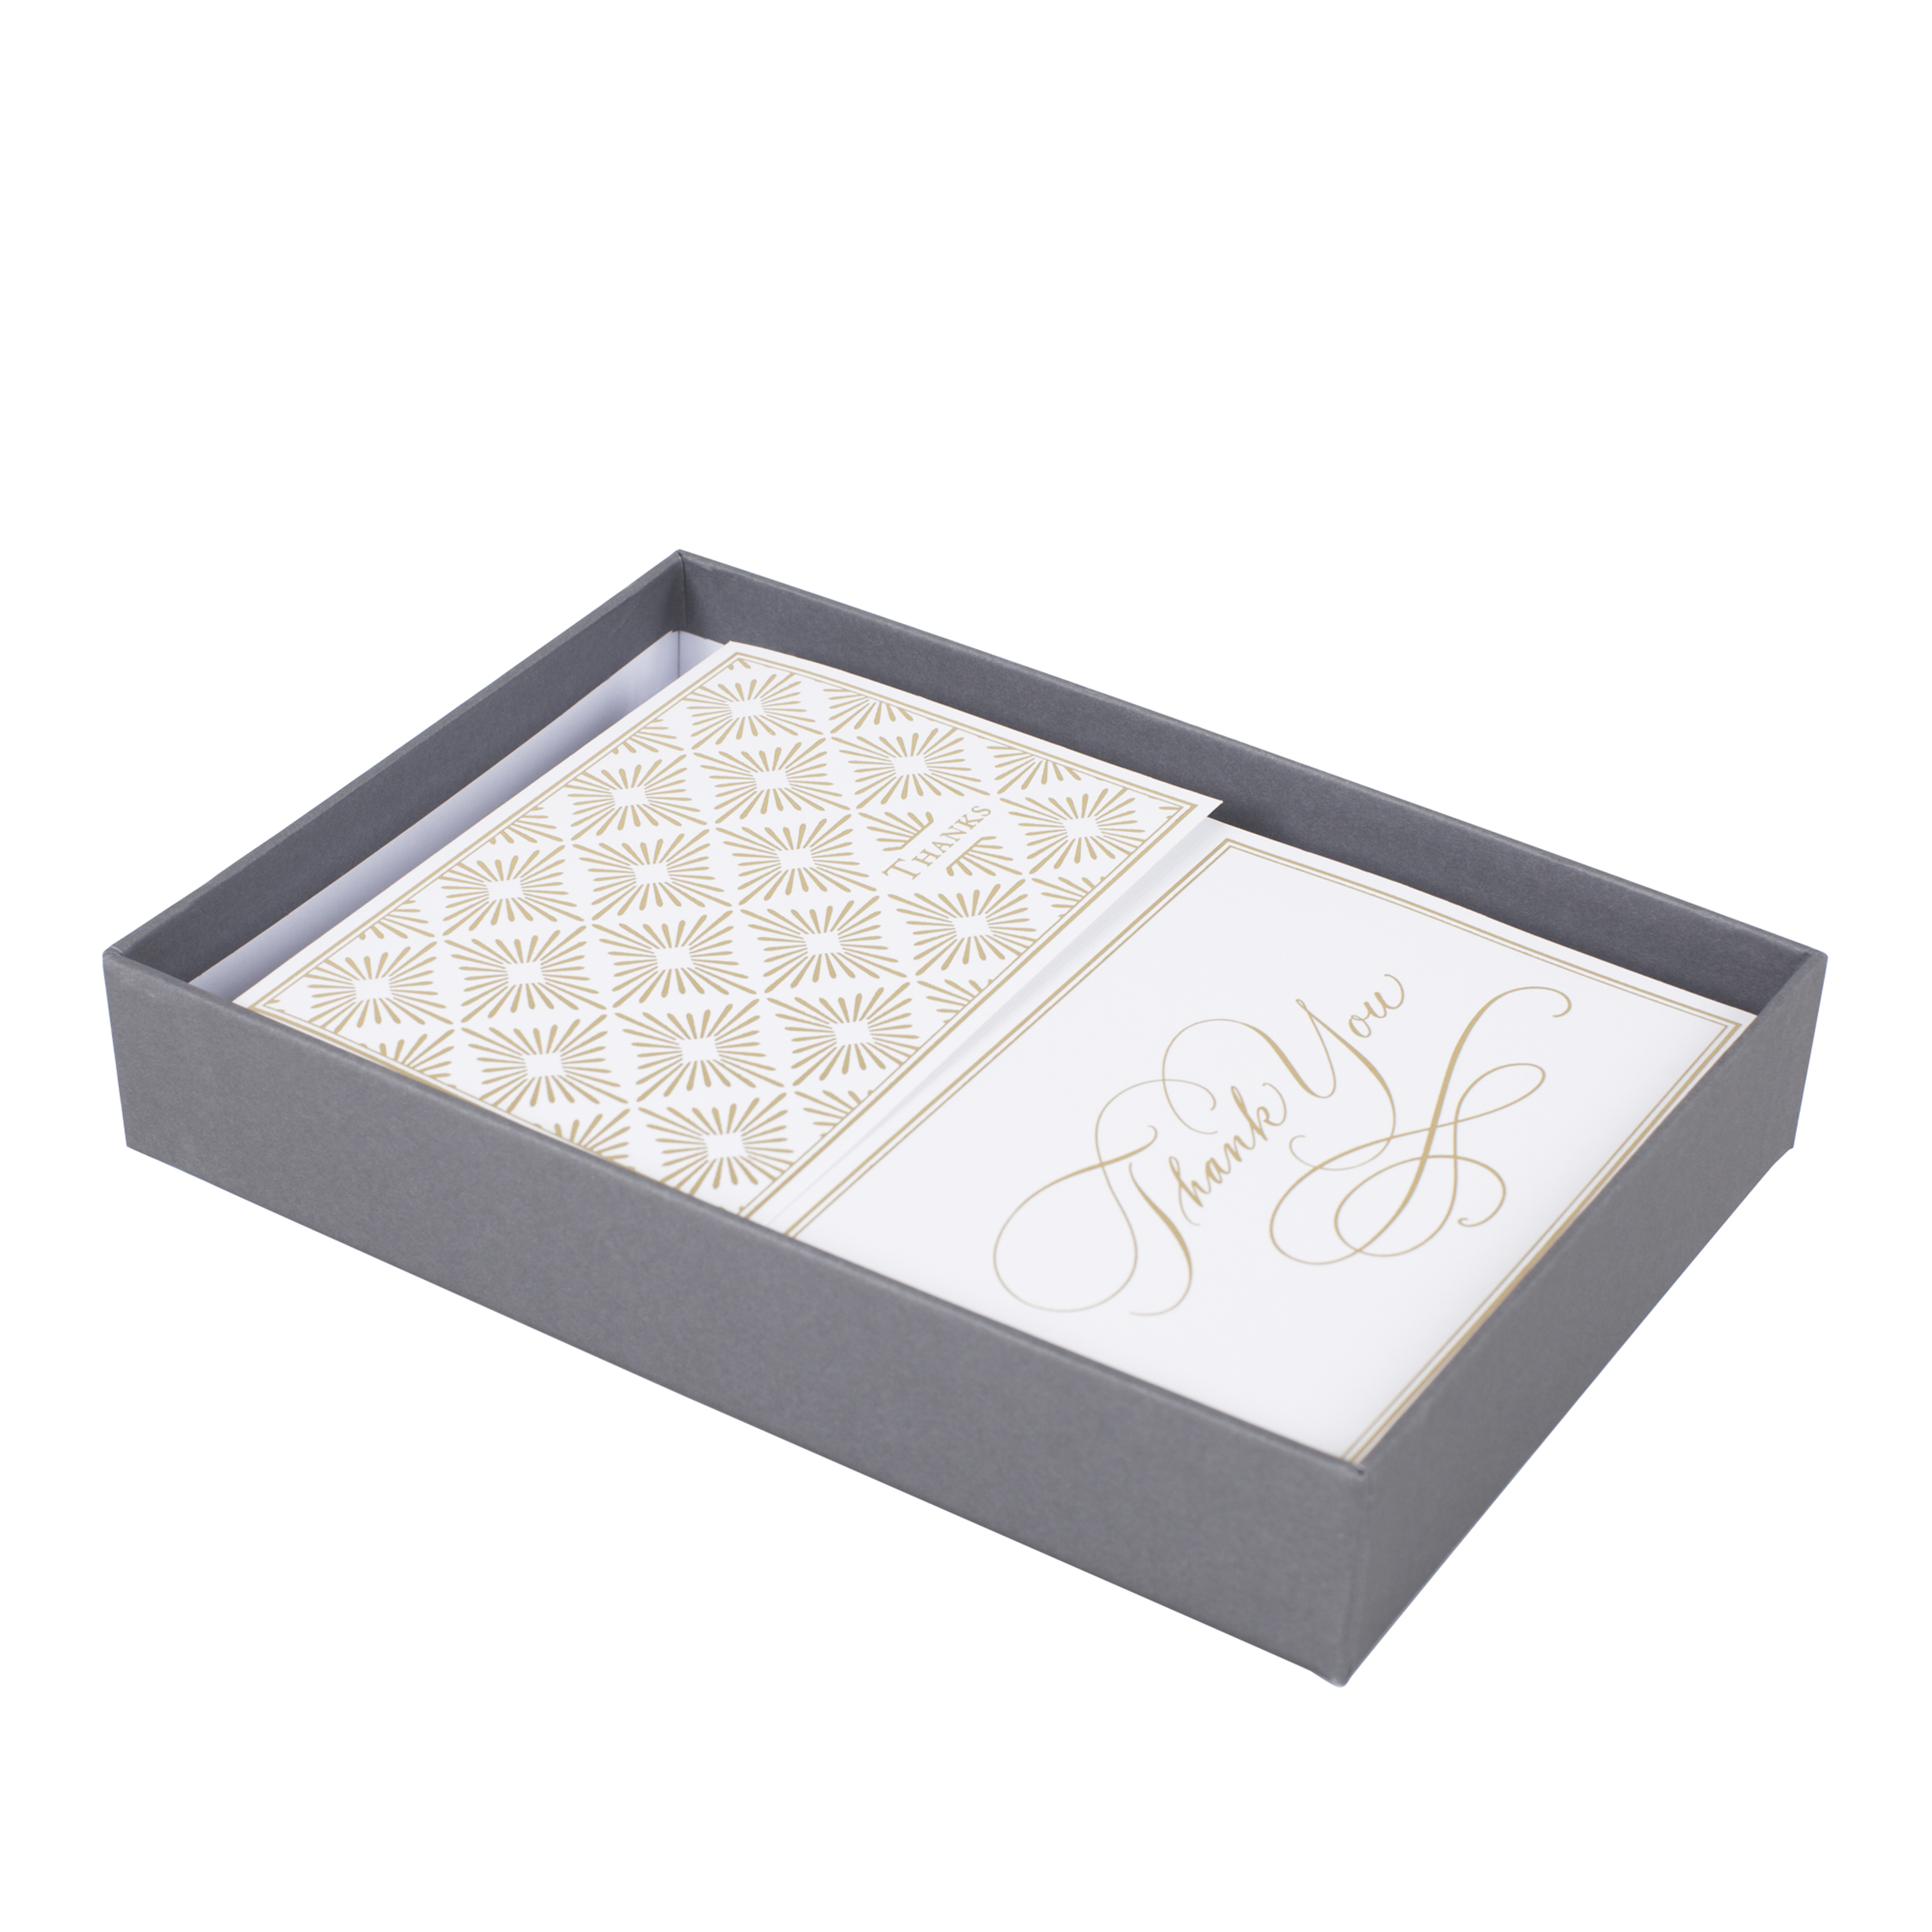 Hallmark Thank You Note Assortment (Gold Foil Scroll, 50 Cards and Envelopes)